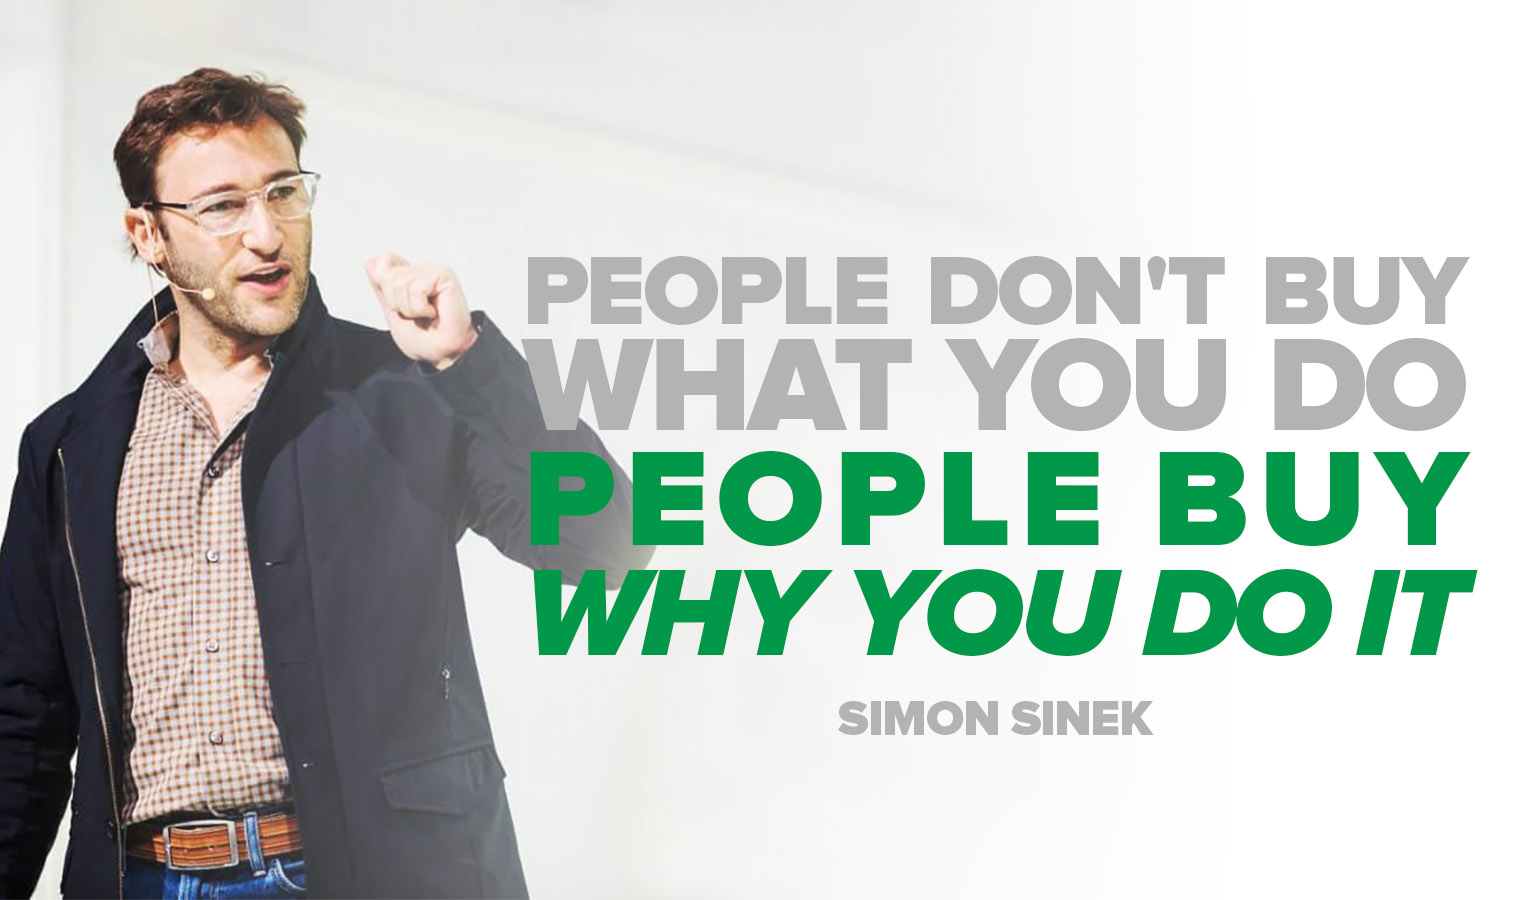 """B2B marketing quote on an image of Author Simon Sinek, Text: """"People don't buy what you do; they buy why you do it."""" - Simon Sinek"""